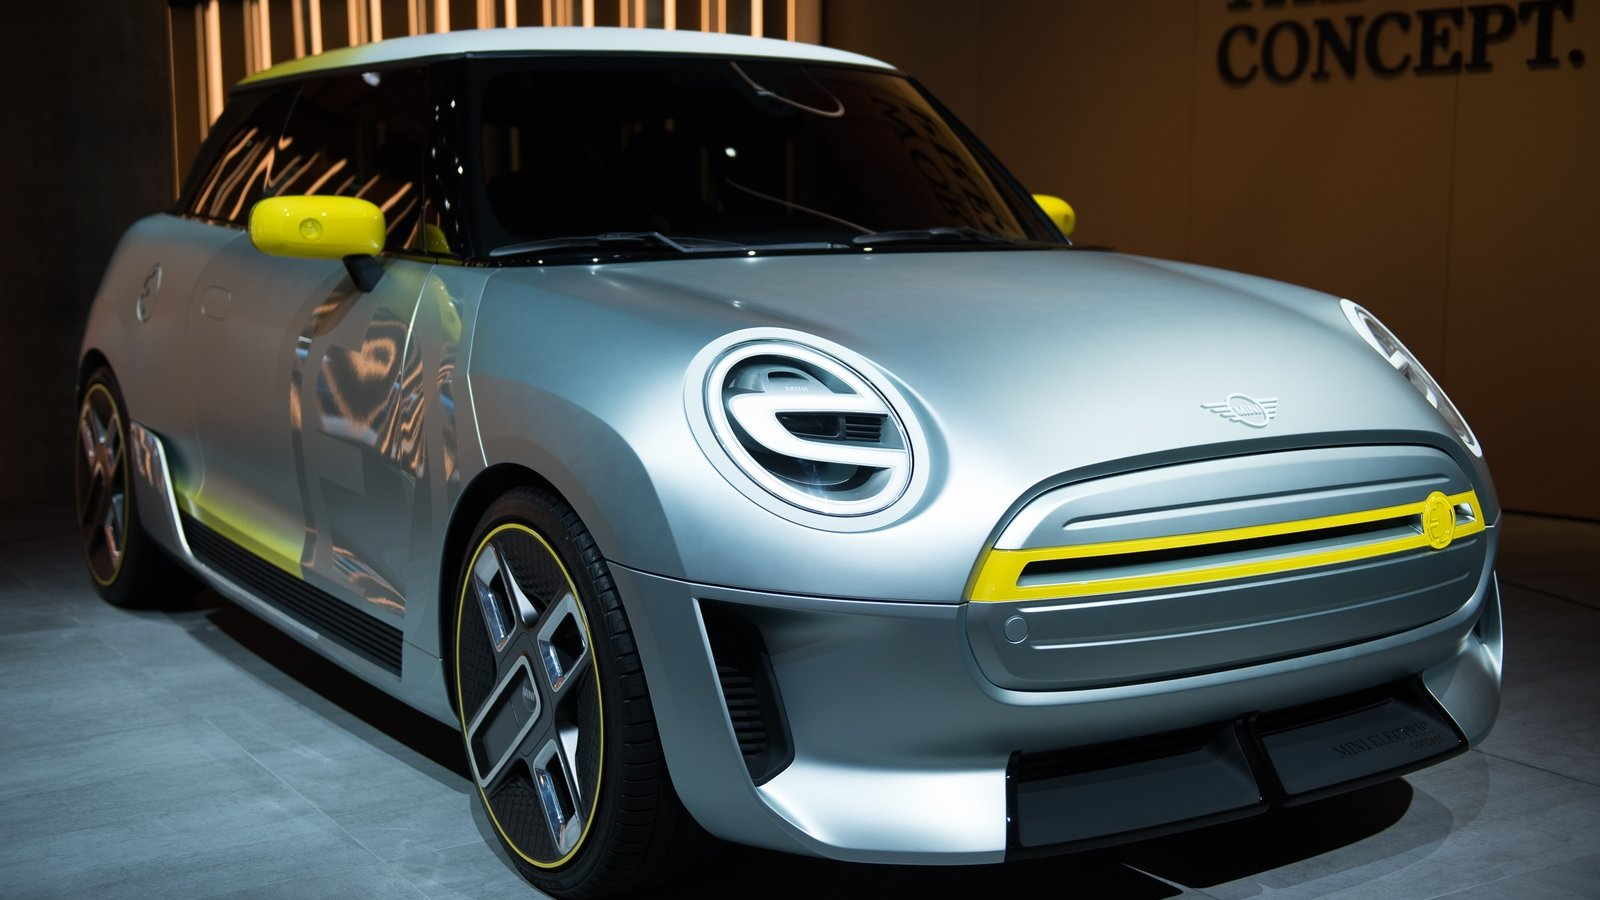 Mini Cooper Electric >> 2017 MINI Electric Concept Review - Top Speed